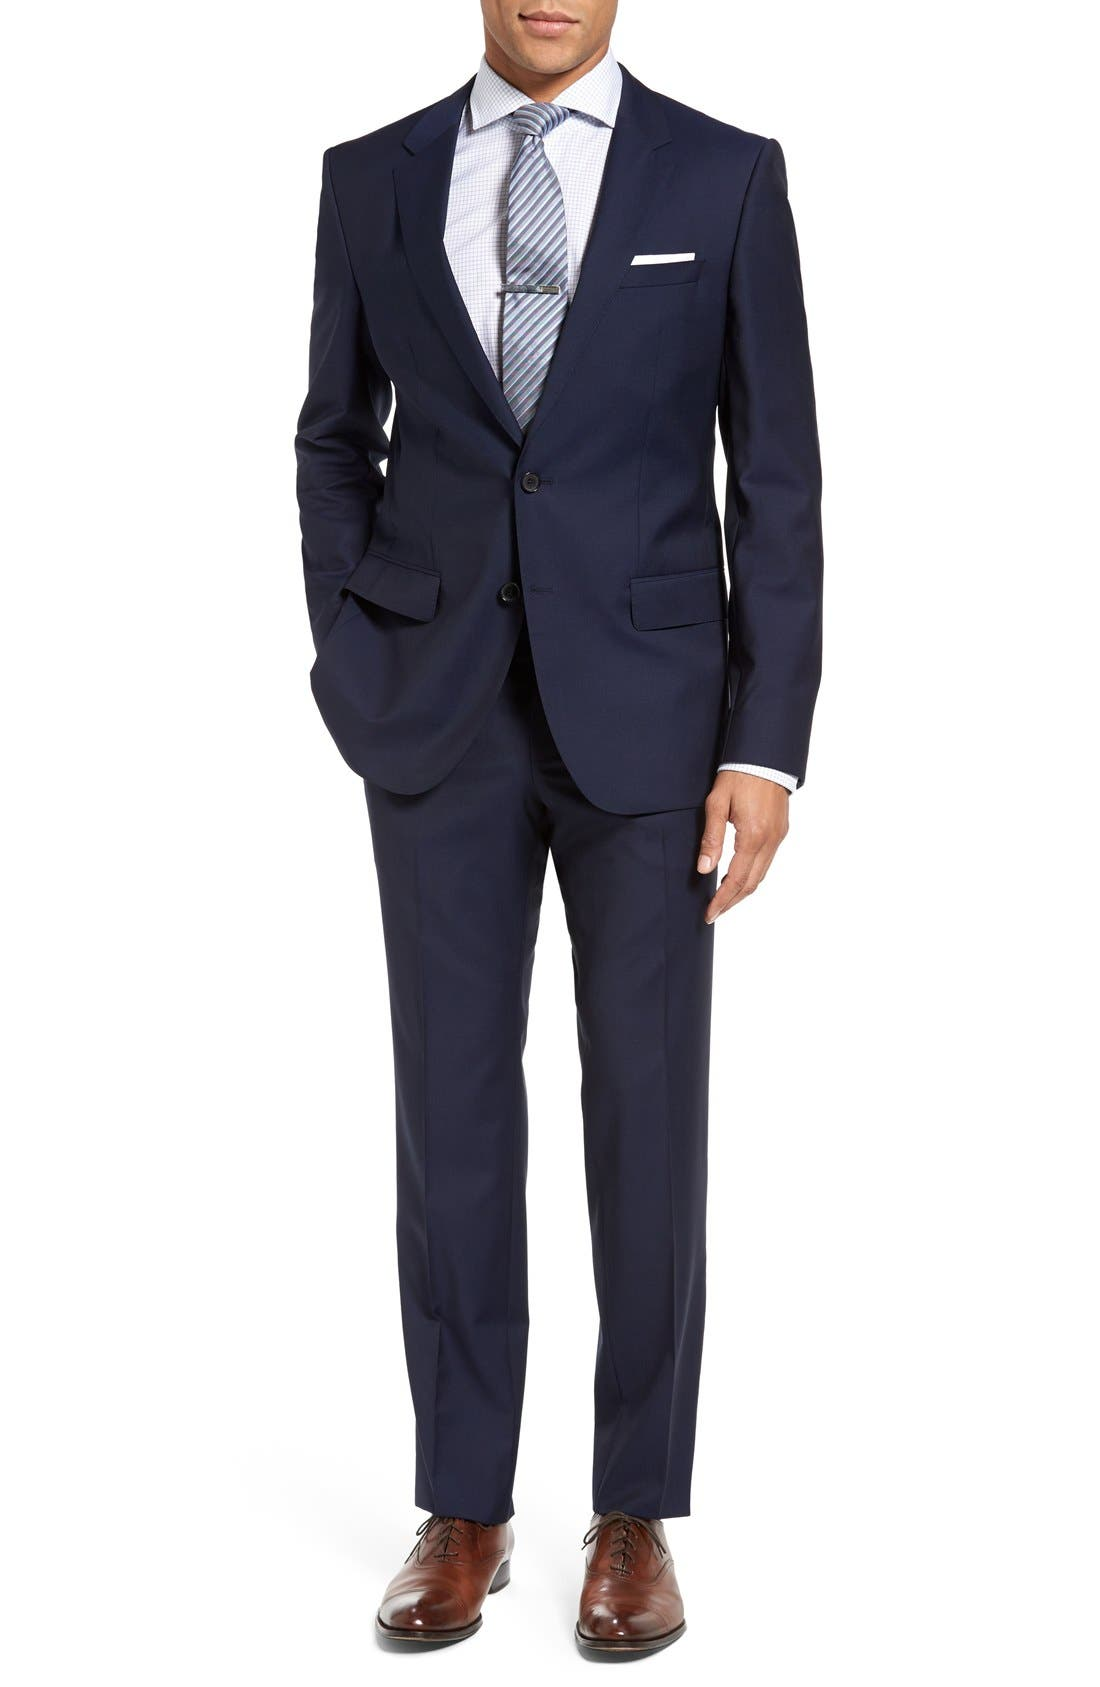 Huge/Genius Trim Fit Navy Wool Suit,                         Main,                         color, Navy